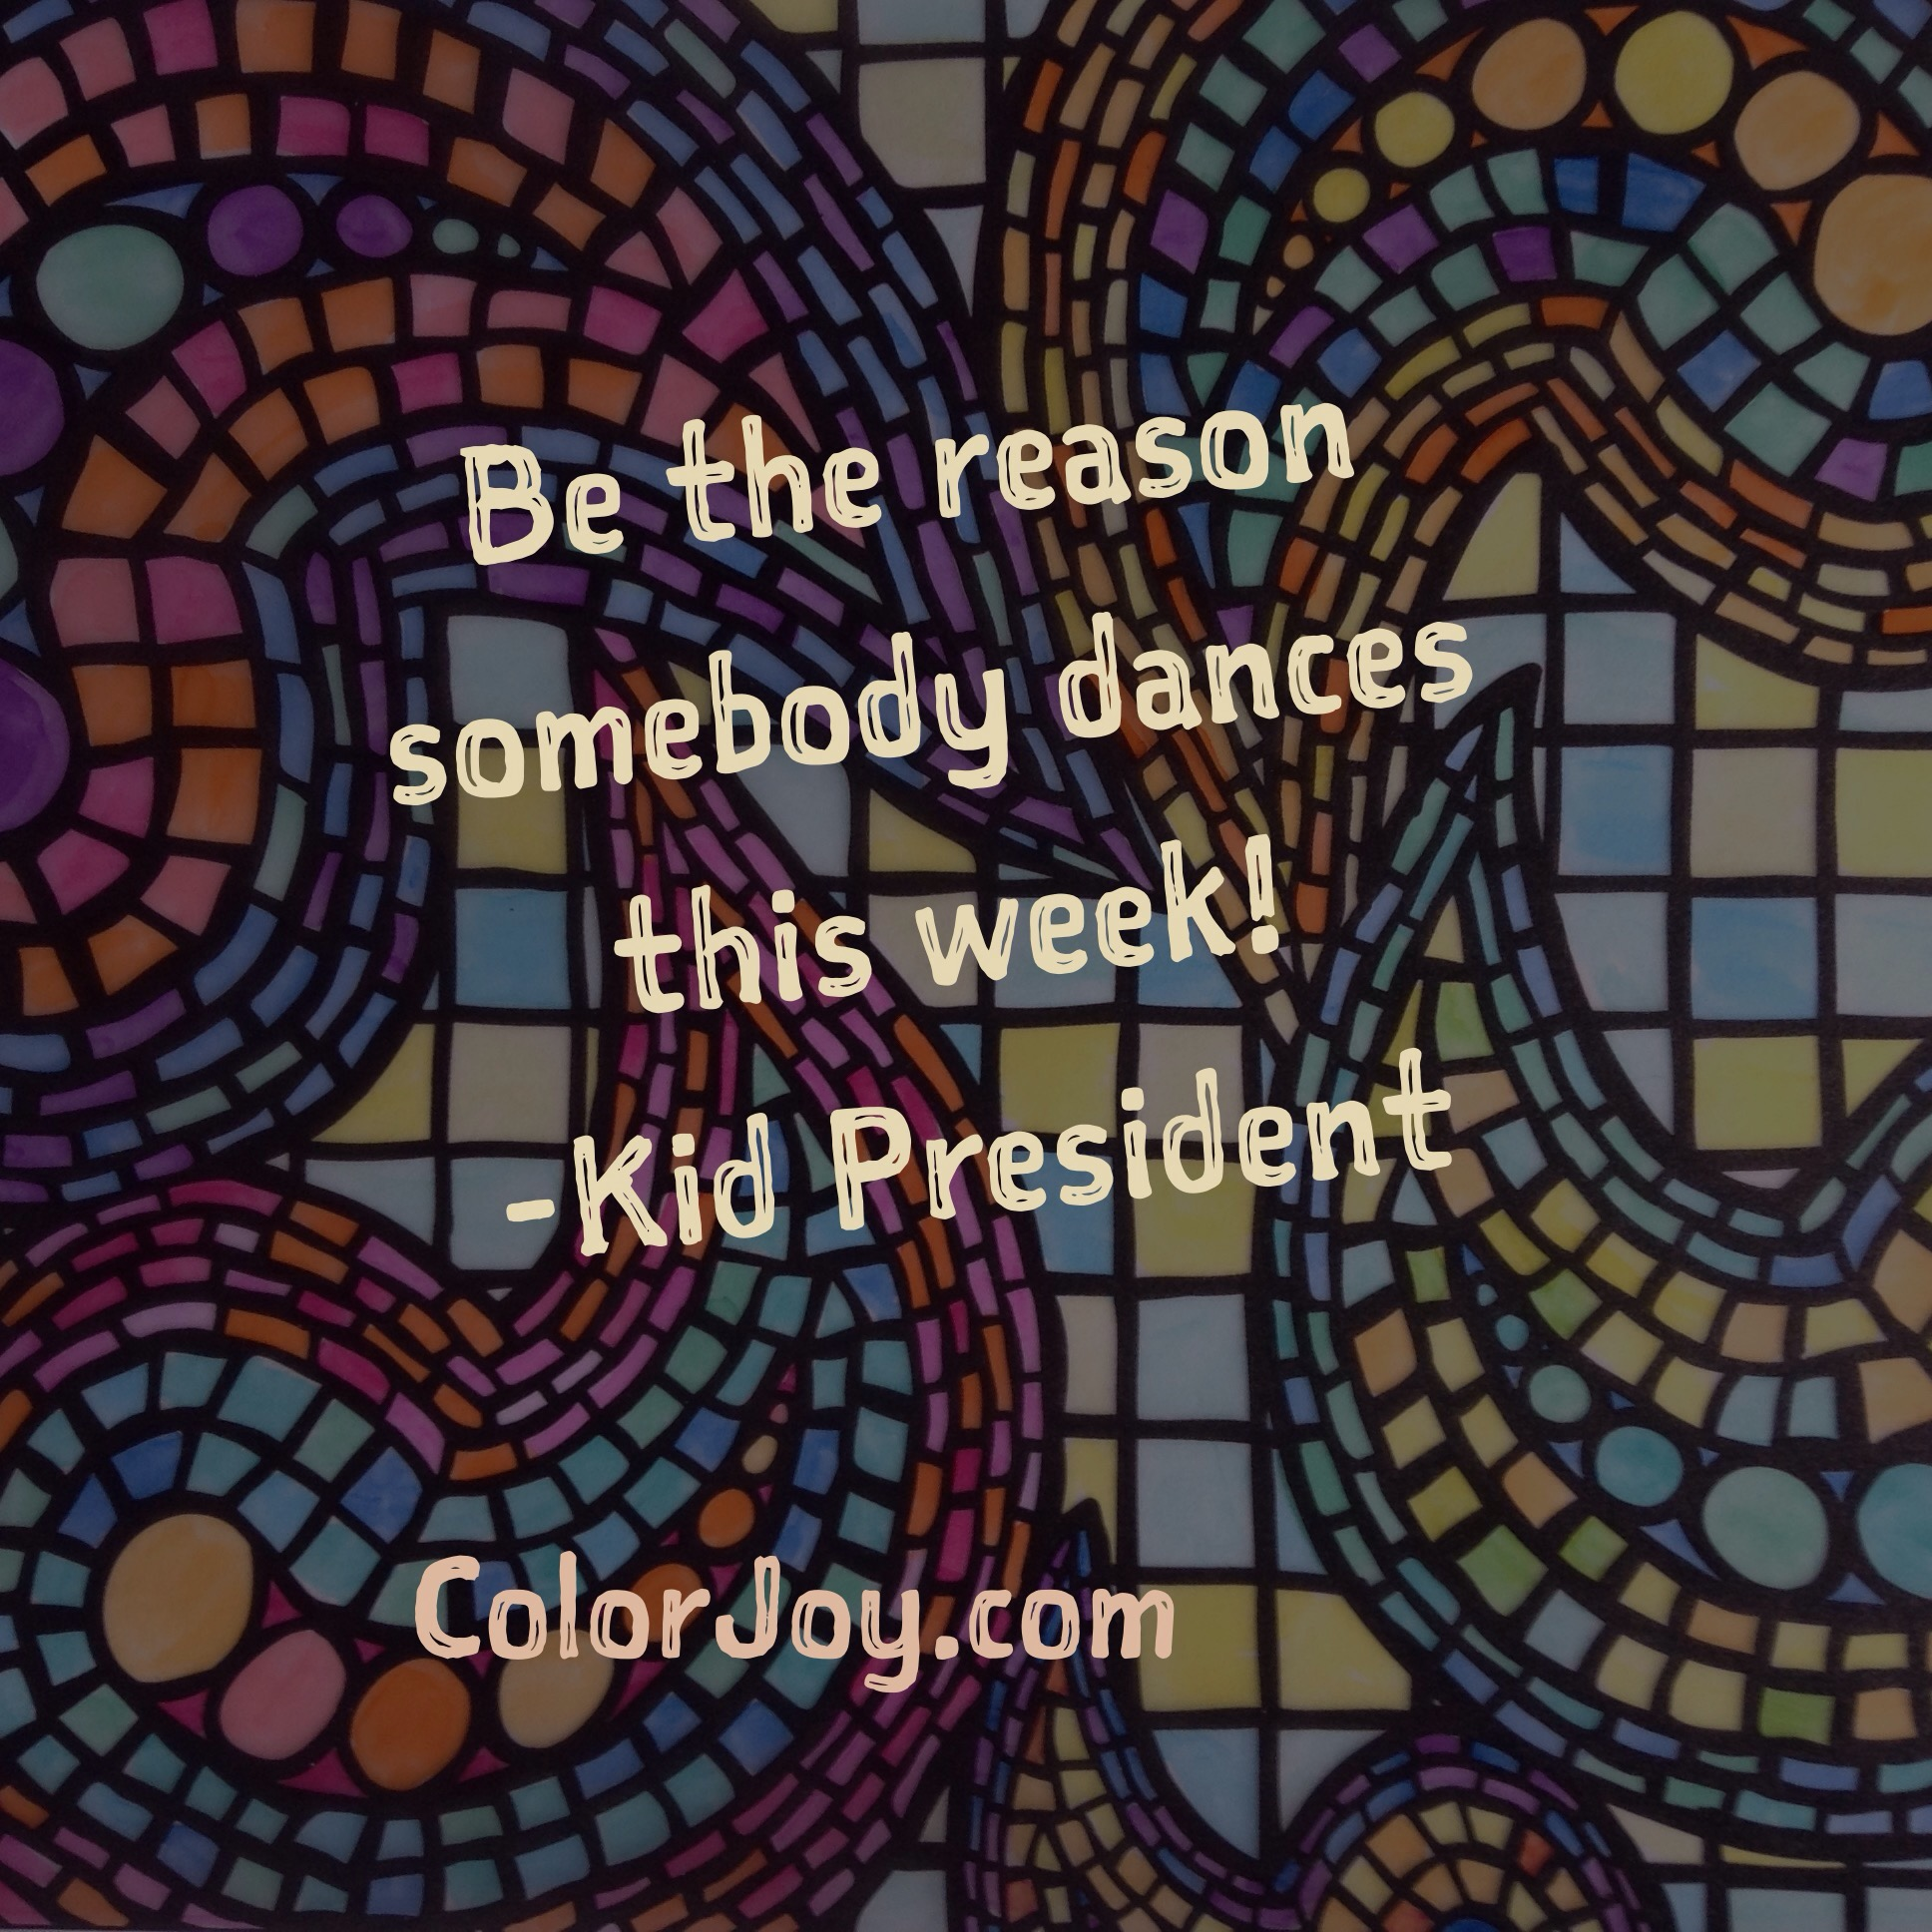 be the reason somebody dances this week!-Kid President